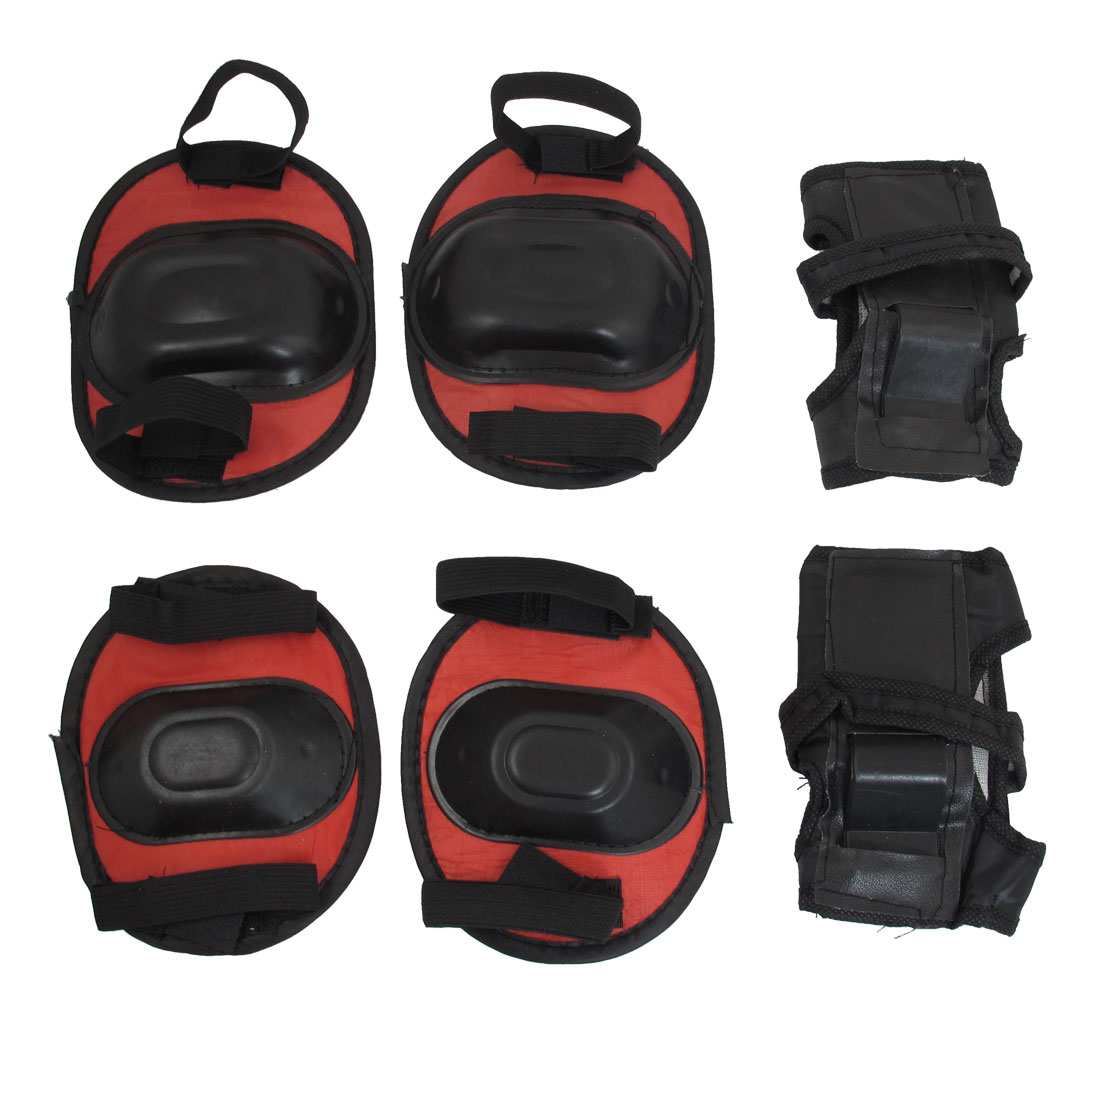 Skating Knee Elbow Wrist Support Protector Pads Red Black for Child